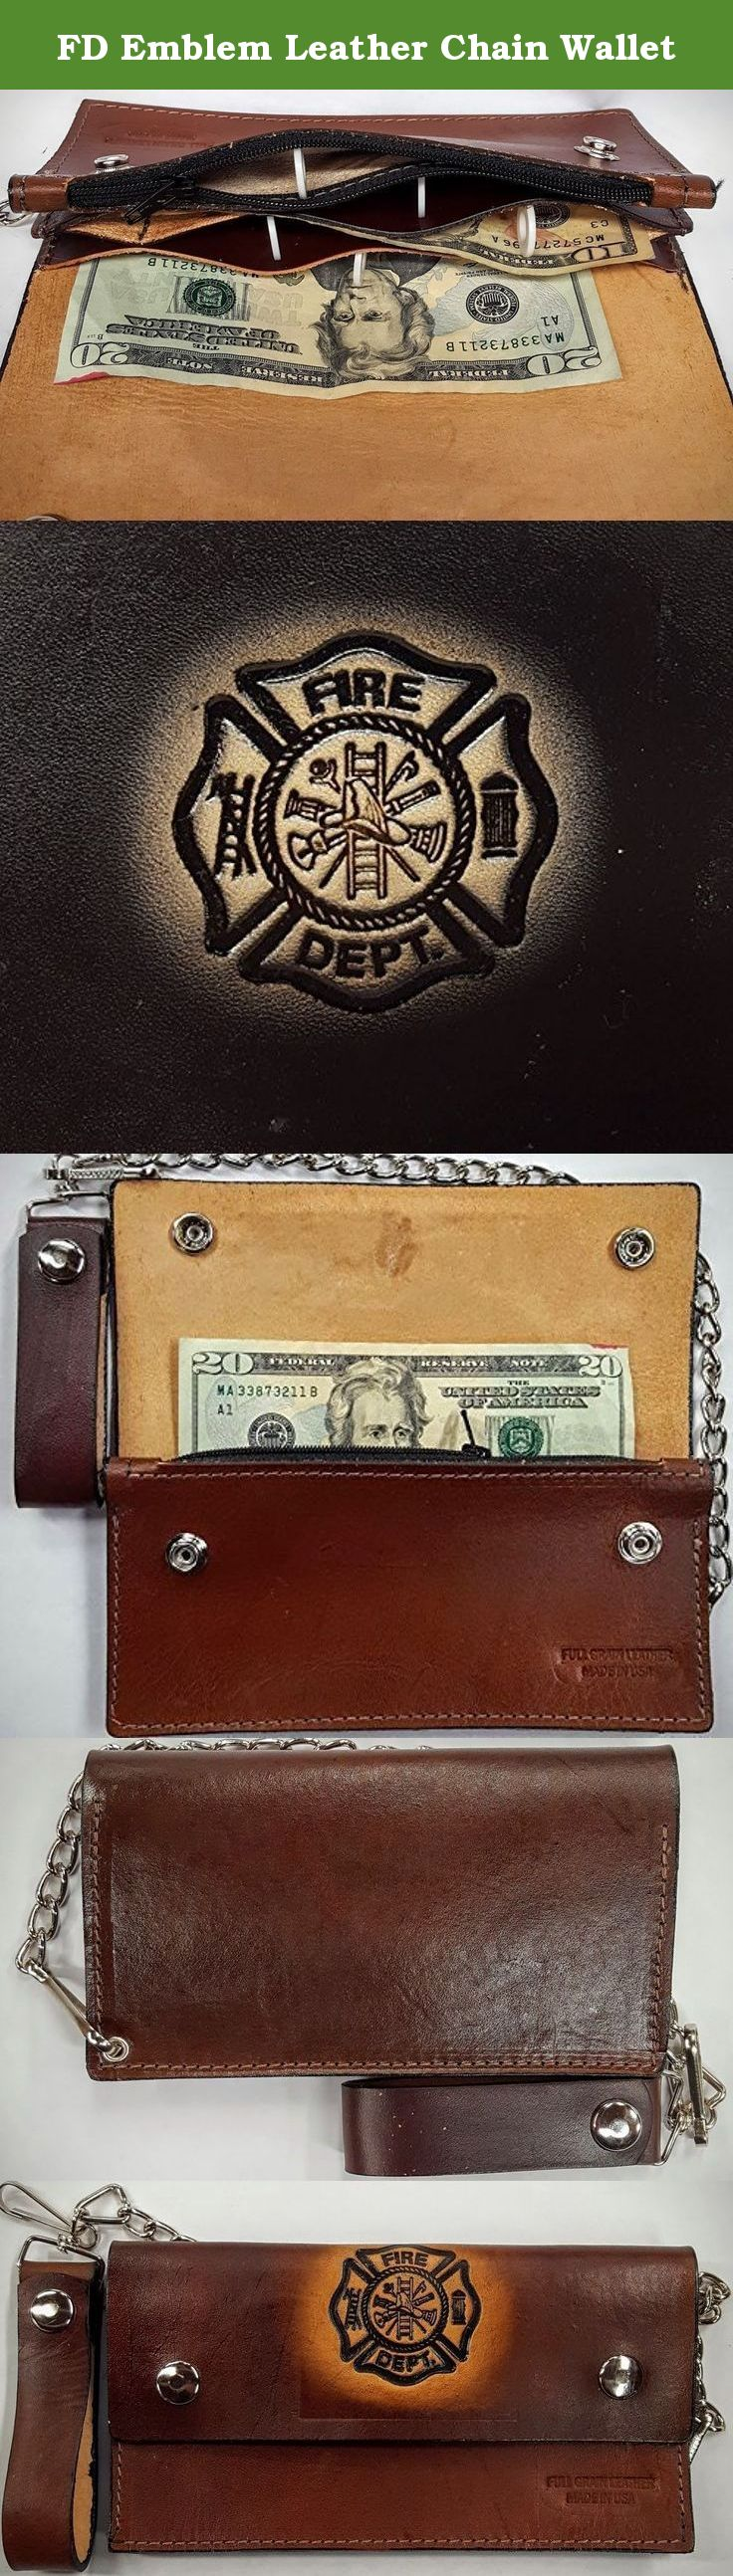 FD Emblem Leather Chain Wallet. These are 100 % Leather Wallets made in the USA. These wallets are available in a variety of Embossed Designs and or you can special order with your initials or name as well. ( No profanity, Please !! ) These wallet are heavy duty and strong and it also comes with a heavy chain. Additional colors can be ordered upon special request. Please Note : Most of the designs can be ordered with matching Cell Phone Case, Leather Buckle and maybe a belt, too. Please...